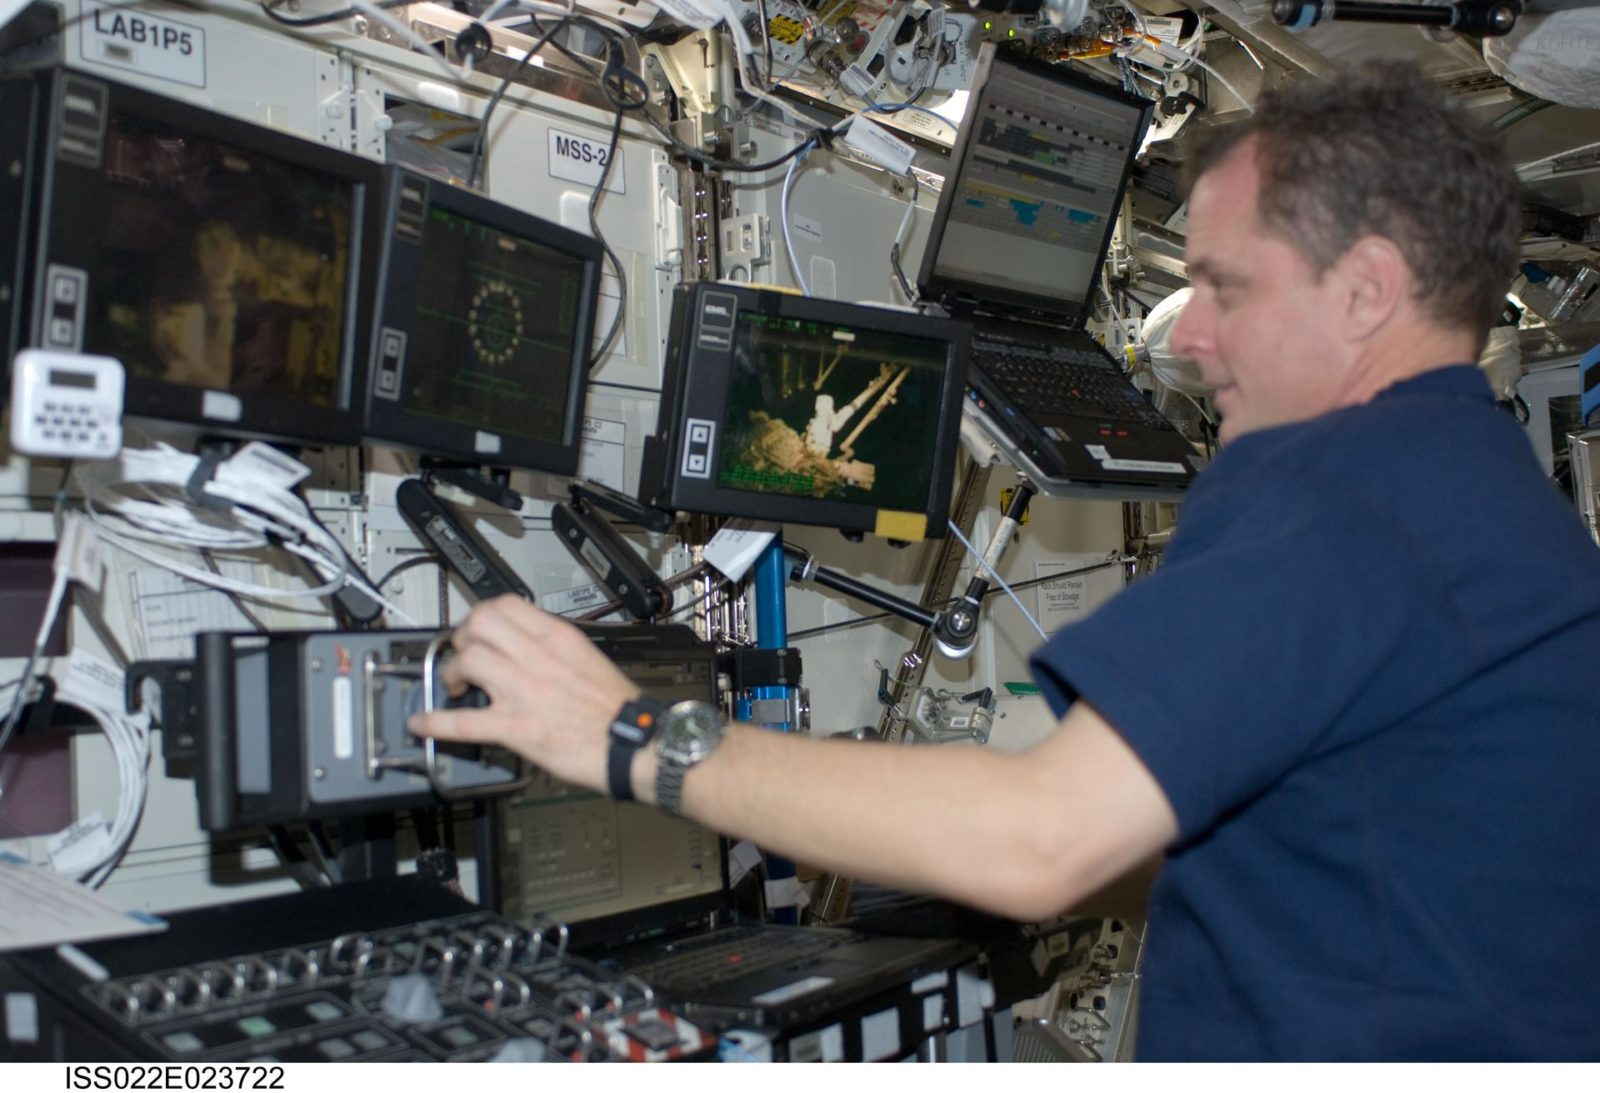 Creamer at the SSRMS Canadarm2 Workstation in the U.S. Laboratory during Expedition 22